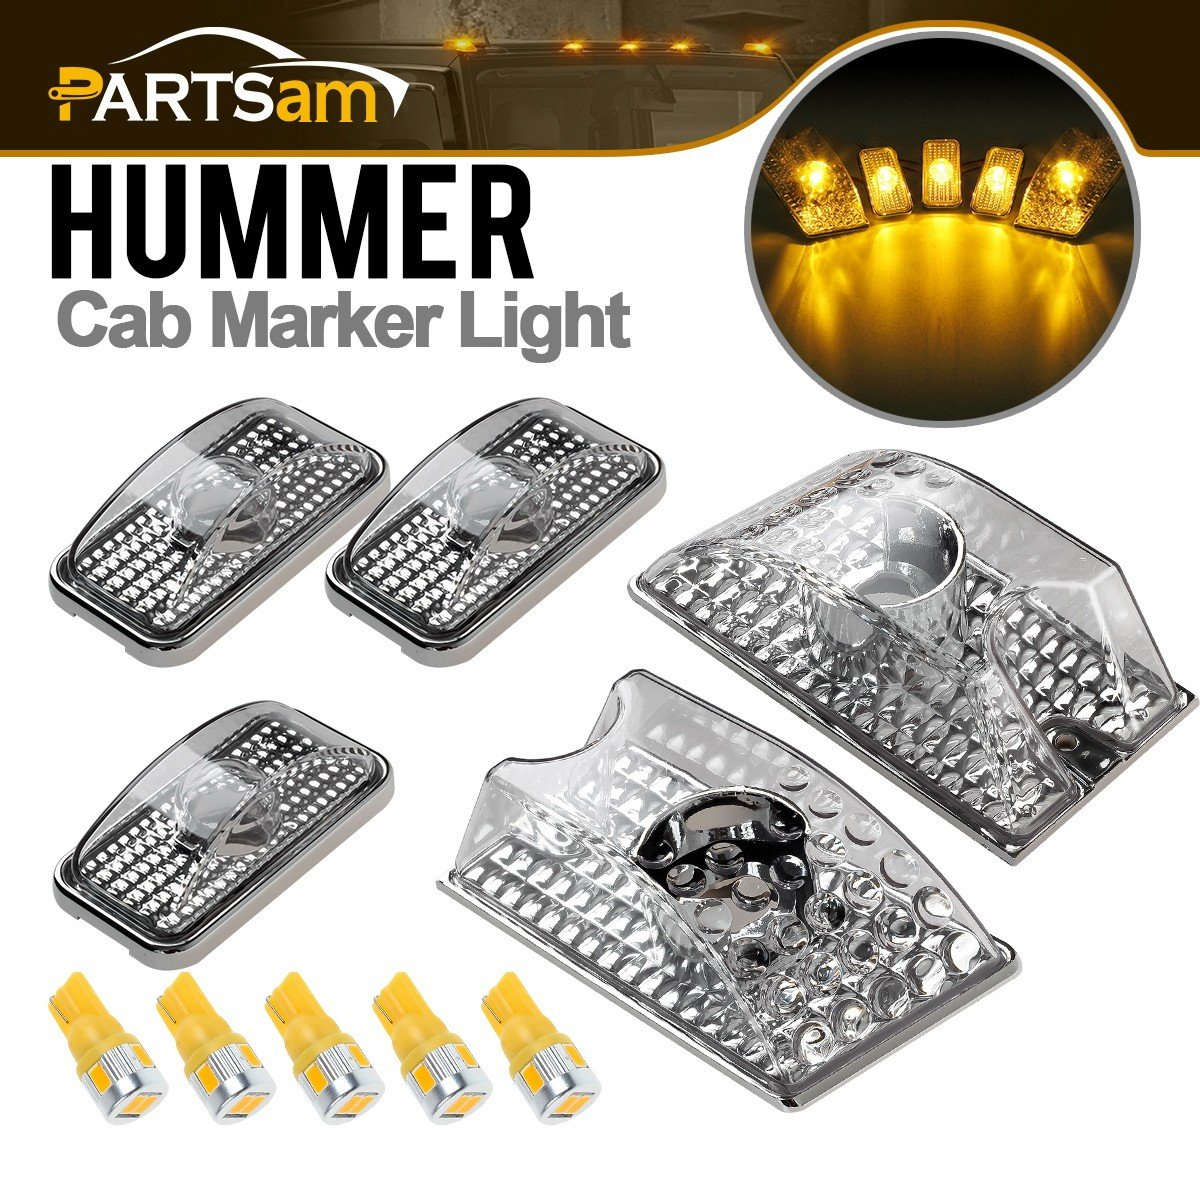 Partsam 5PCS 264160CL Front Cab Marker Top Roof Light LED Clearance Crystal Chrome Lights + 5PCS 194 168 W5W Amber T10 LED Bulbs Replacement for 2003 2004 2005 2006 2007 2008 2009 Hummer H2 SUV SUT